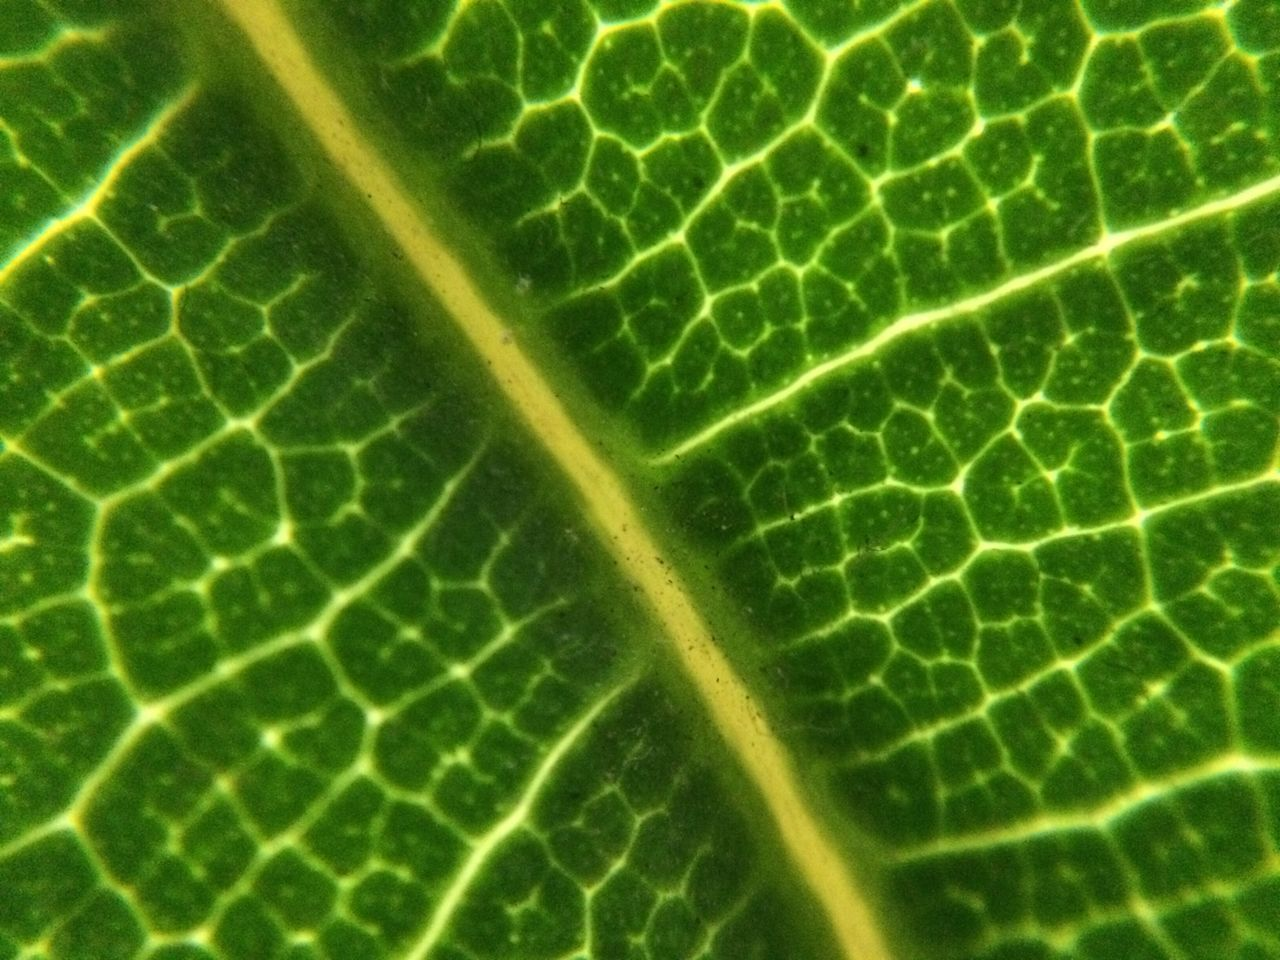 leaf, green color, close-up, pattern, backgrounds, freshness, full frame, no people, textured, food, fragility, day, nature, water, outdoors